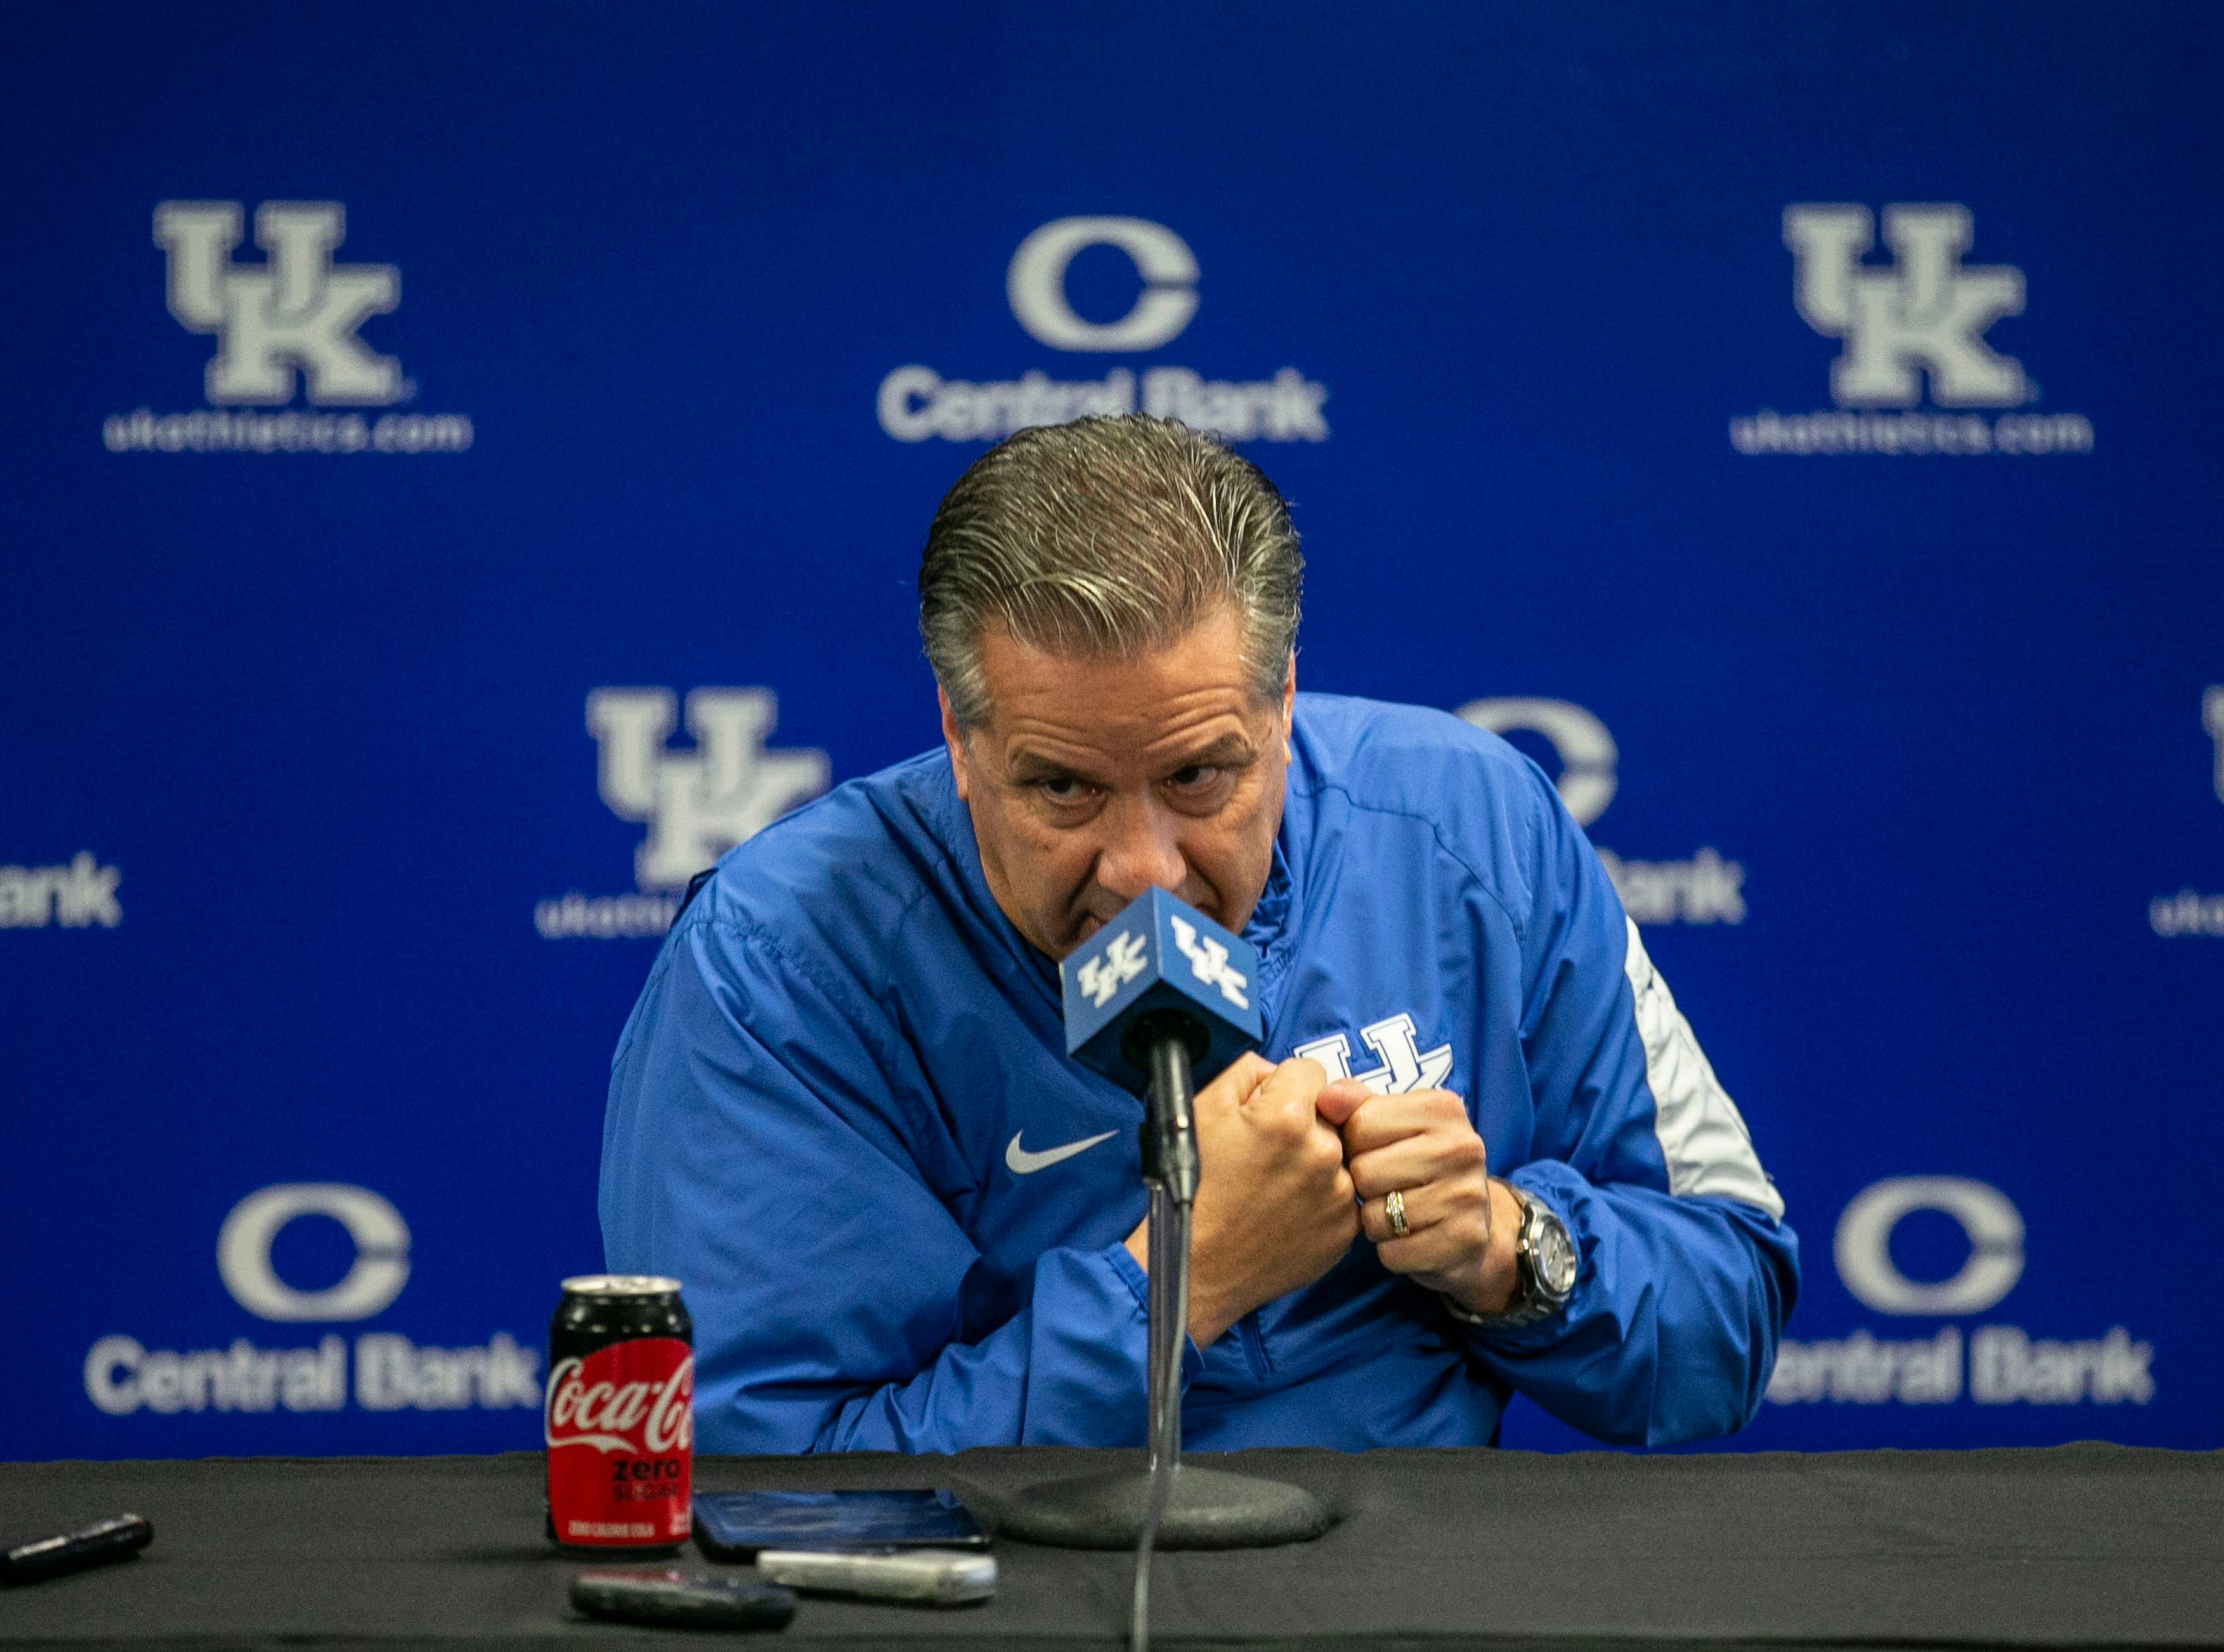 Kentucky basketball coach John Calipari talked about the UK football team's success as well as gave a several minute-long answer about players and the NBA during a 45 minute press conference about the 2018-19 team Thursday afternoon in Lexington.